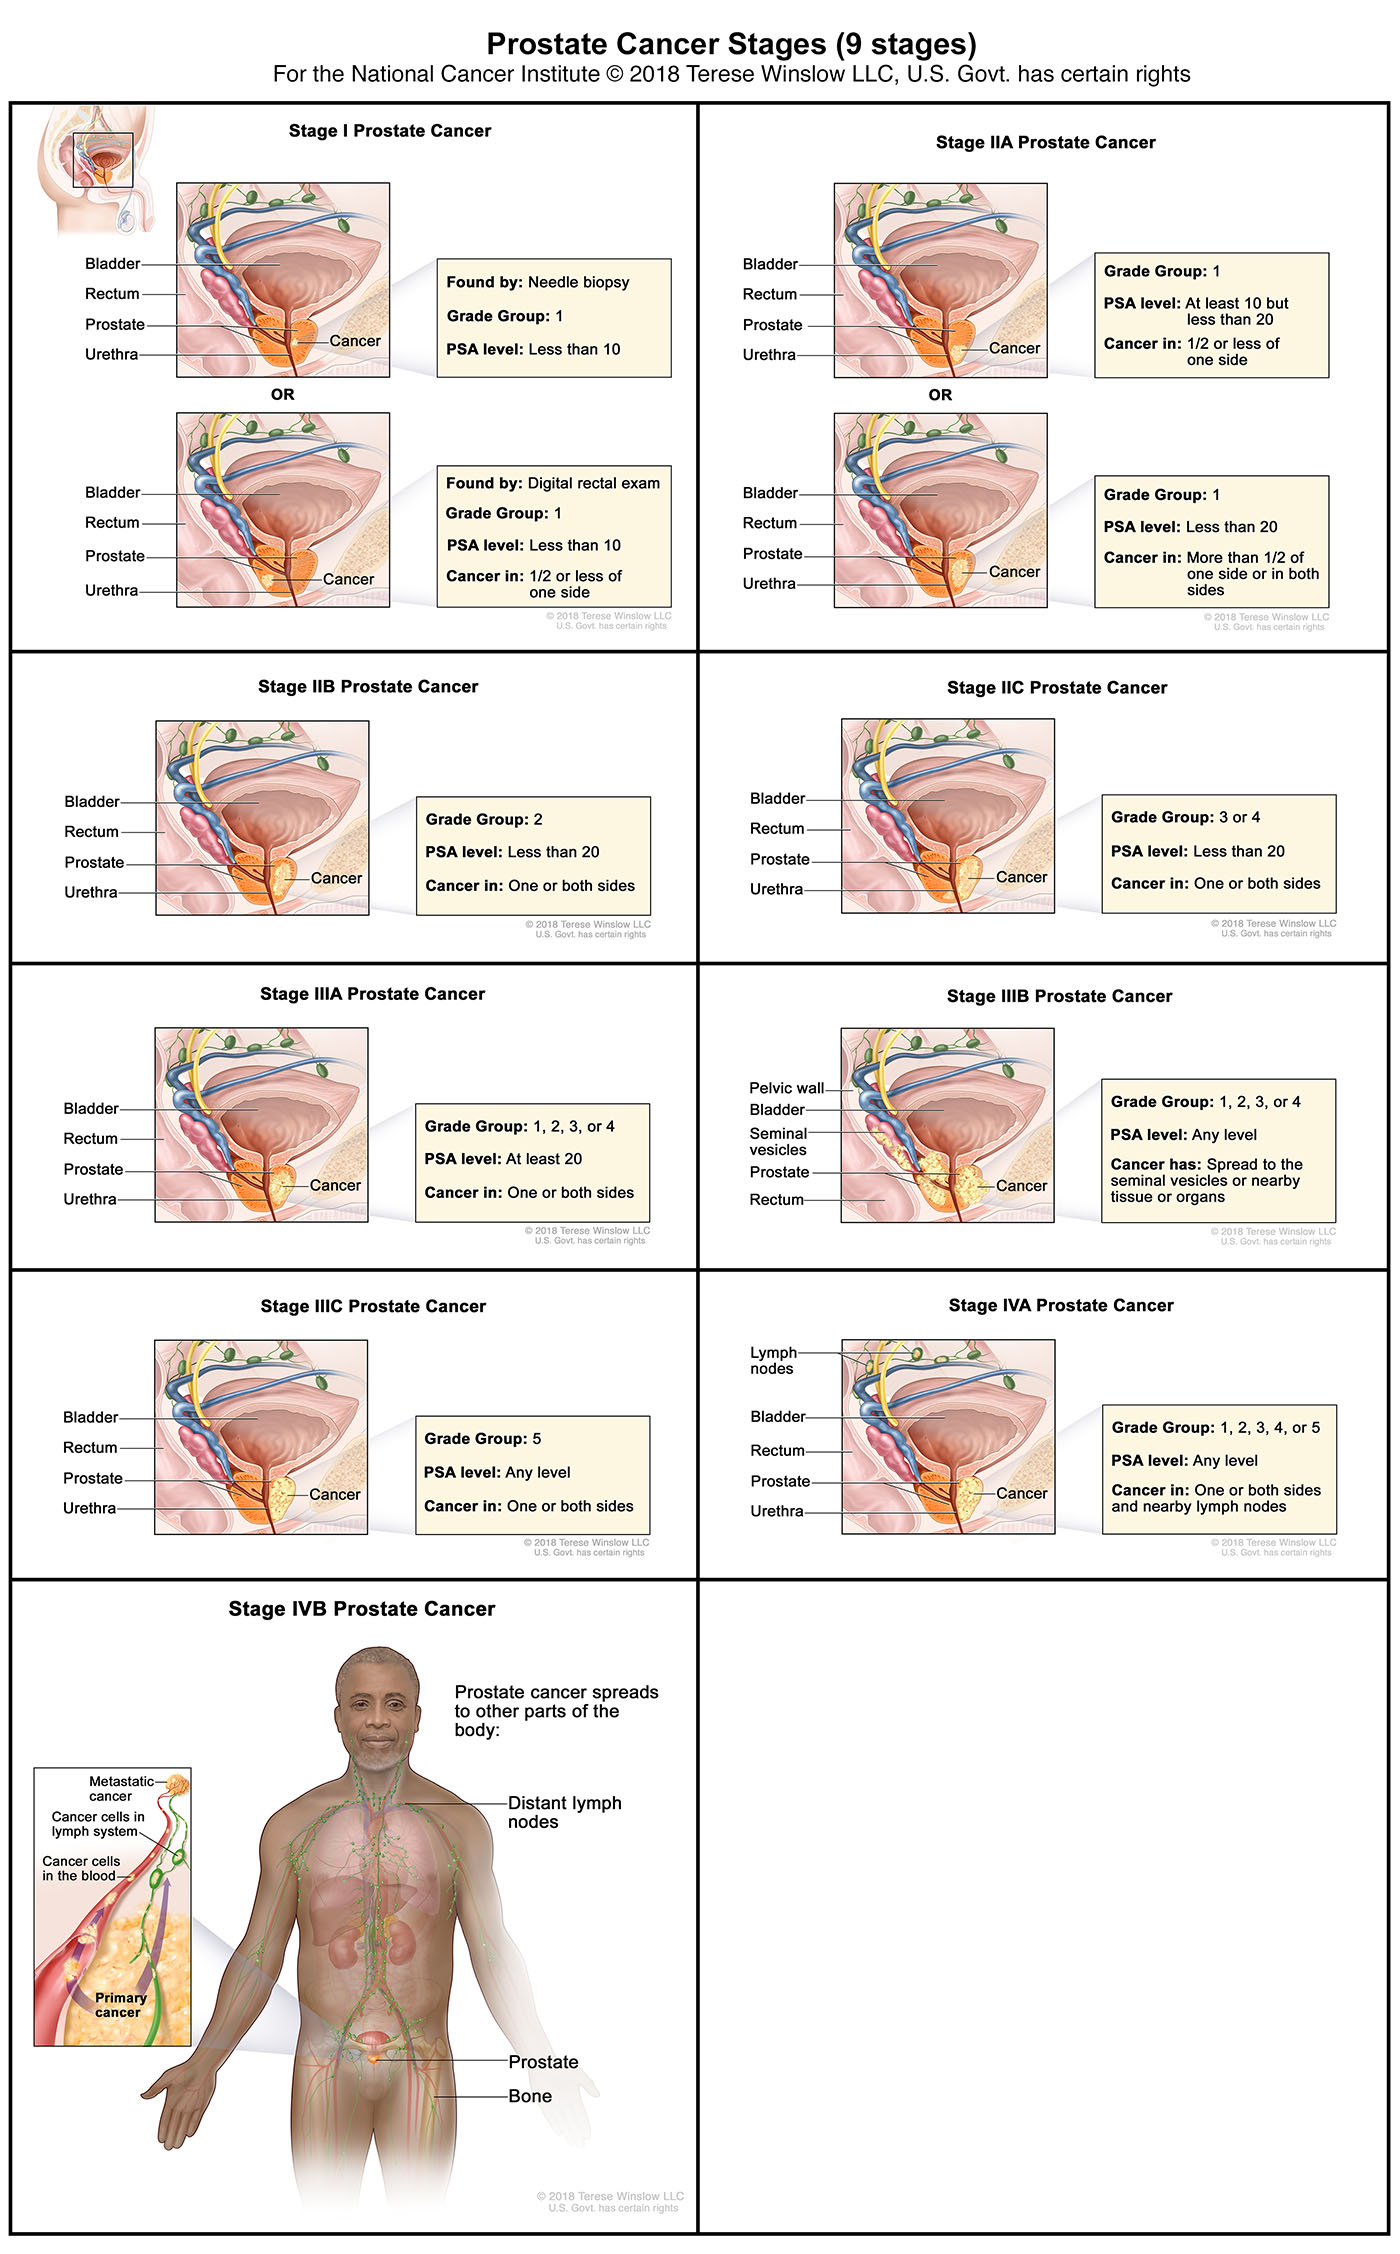 Prostate Cancer Stages (AJCC 8th edition)